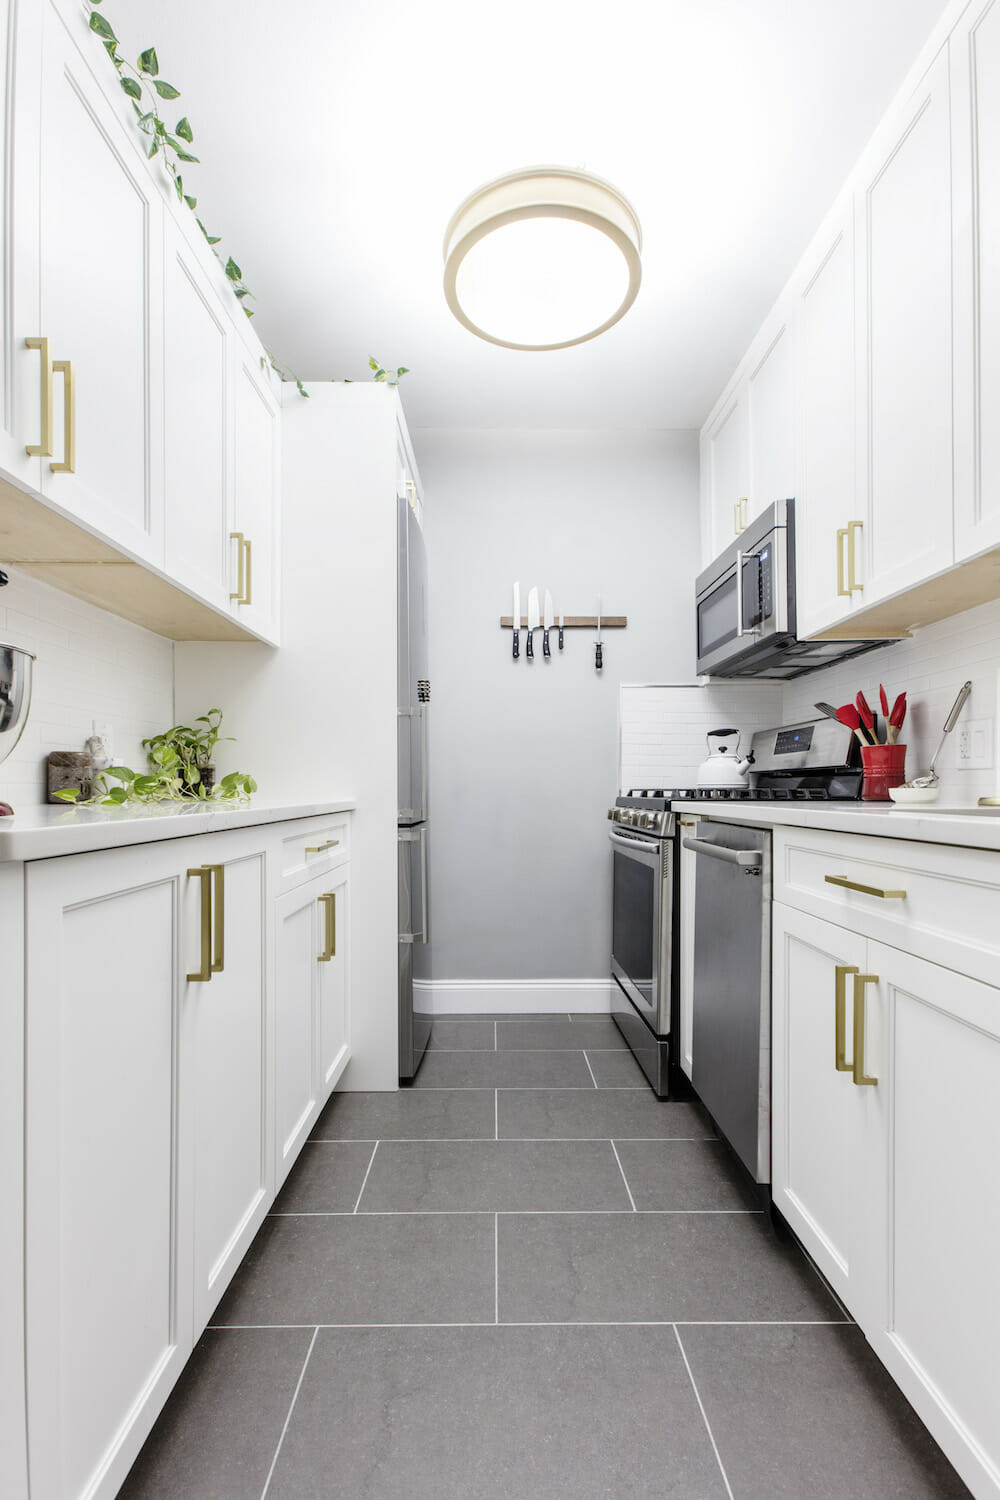 9 Space Enhancing Ideas For Your Galley Kitchen Remodel In 2020 Galley Kitchen Remodel Galley Kitchen Layout Kitchen Design Small